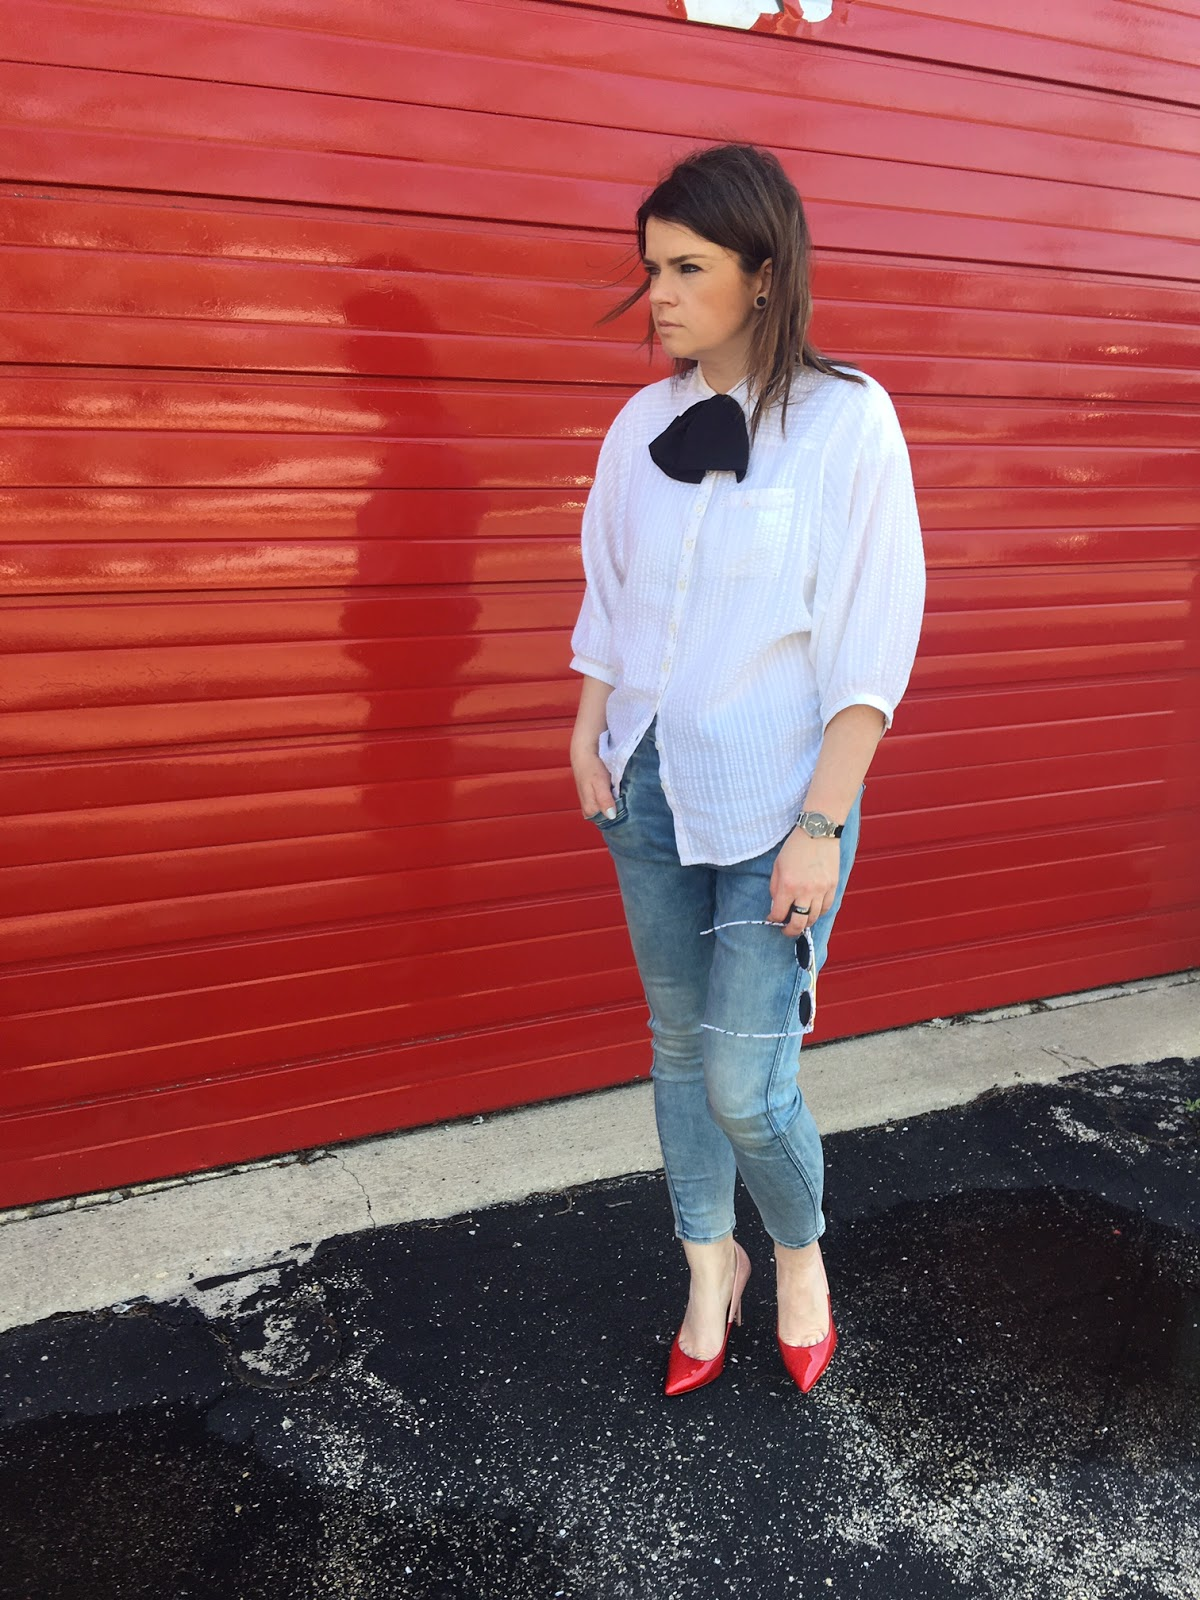 Red pumps & a bow tie